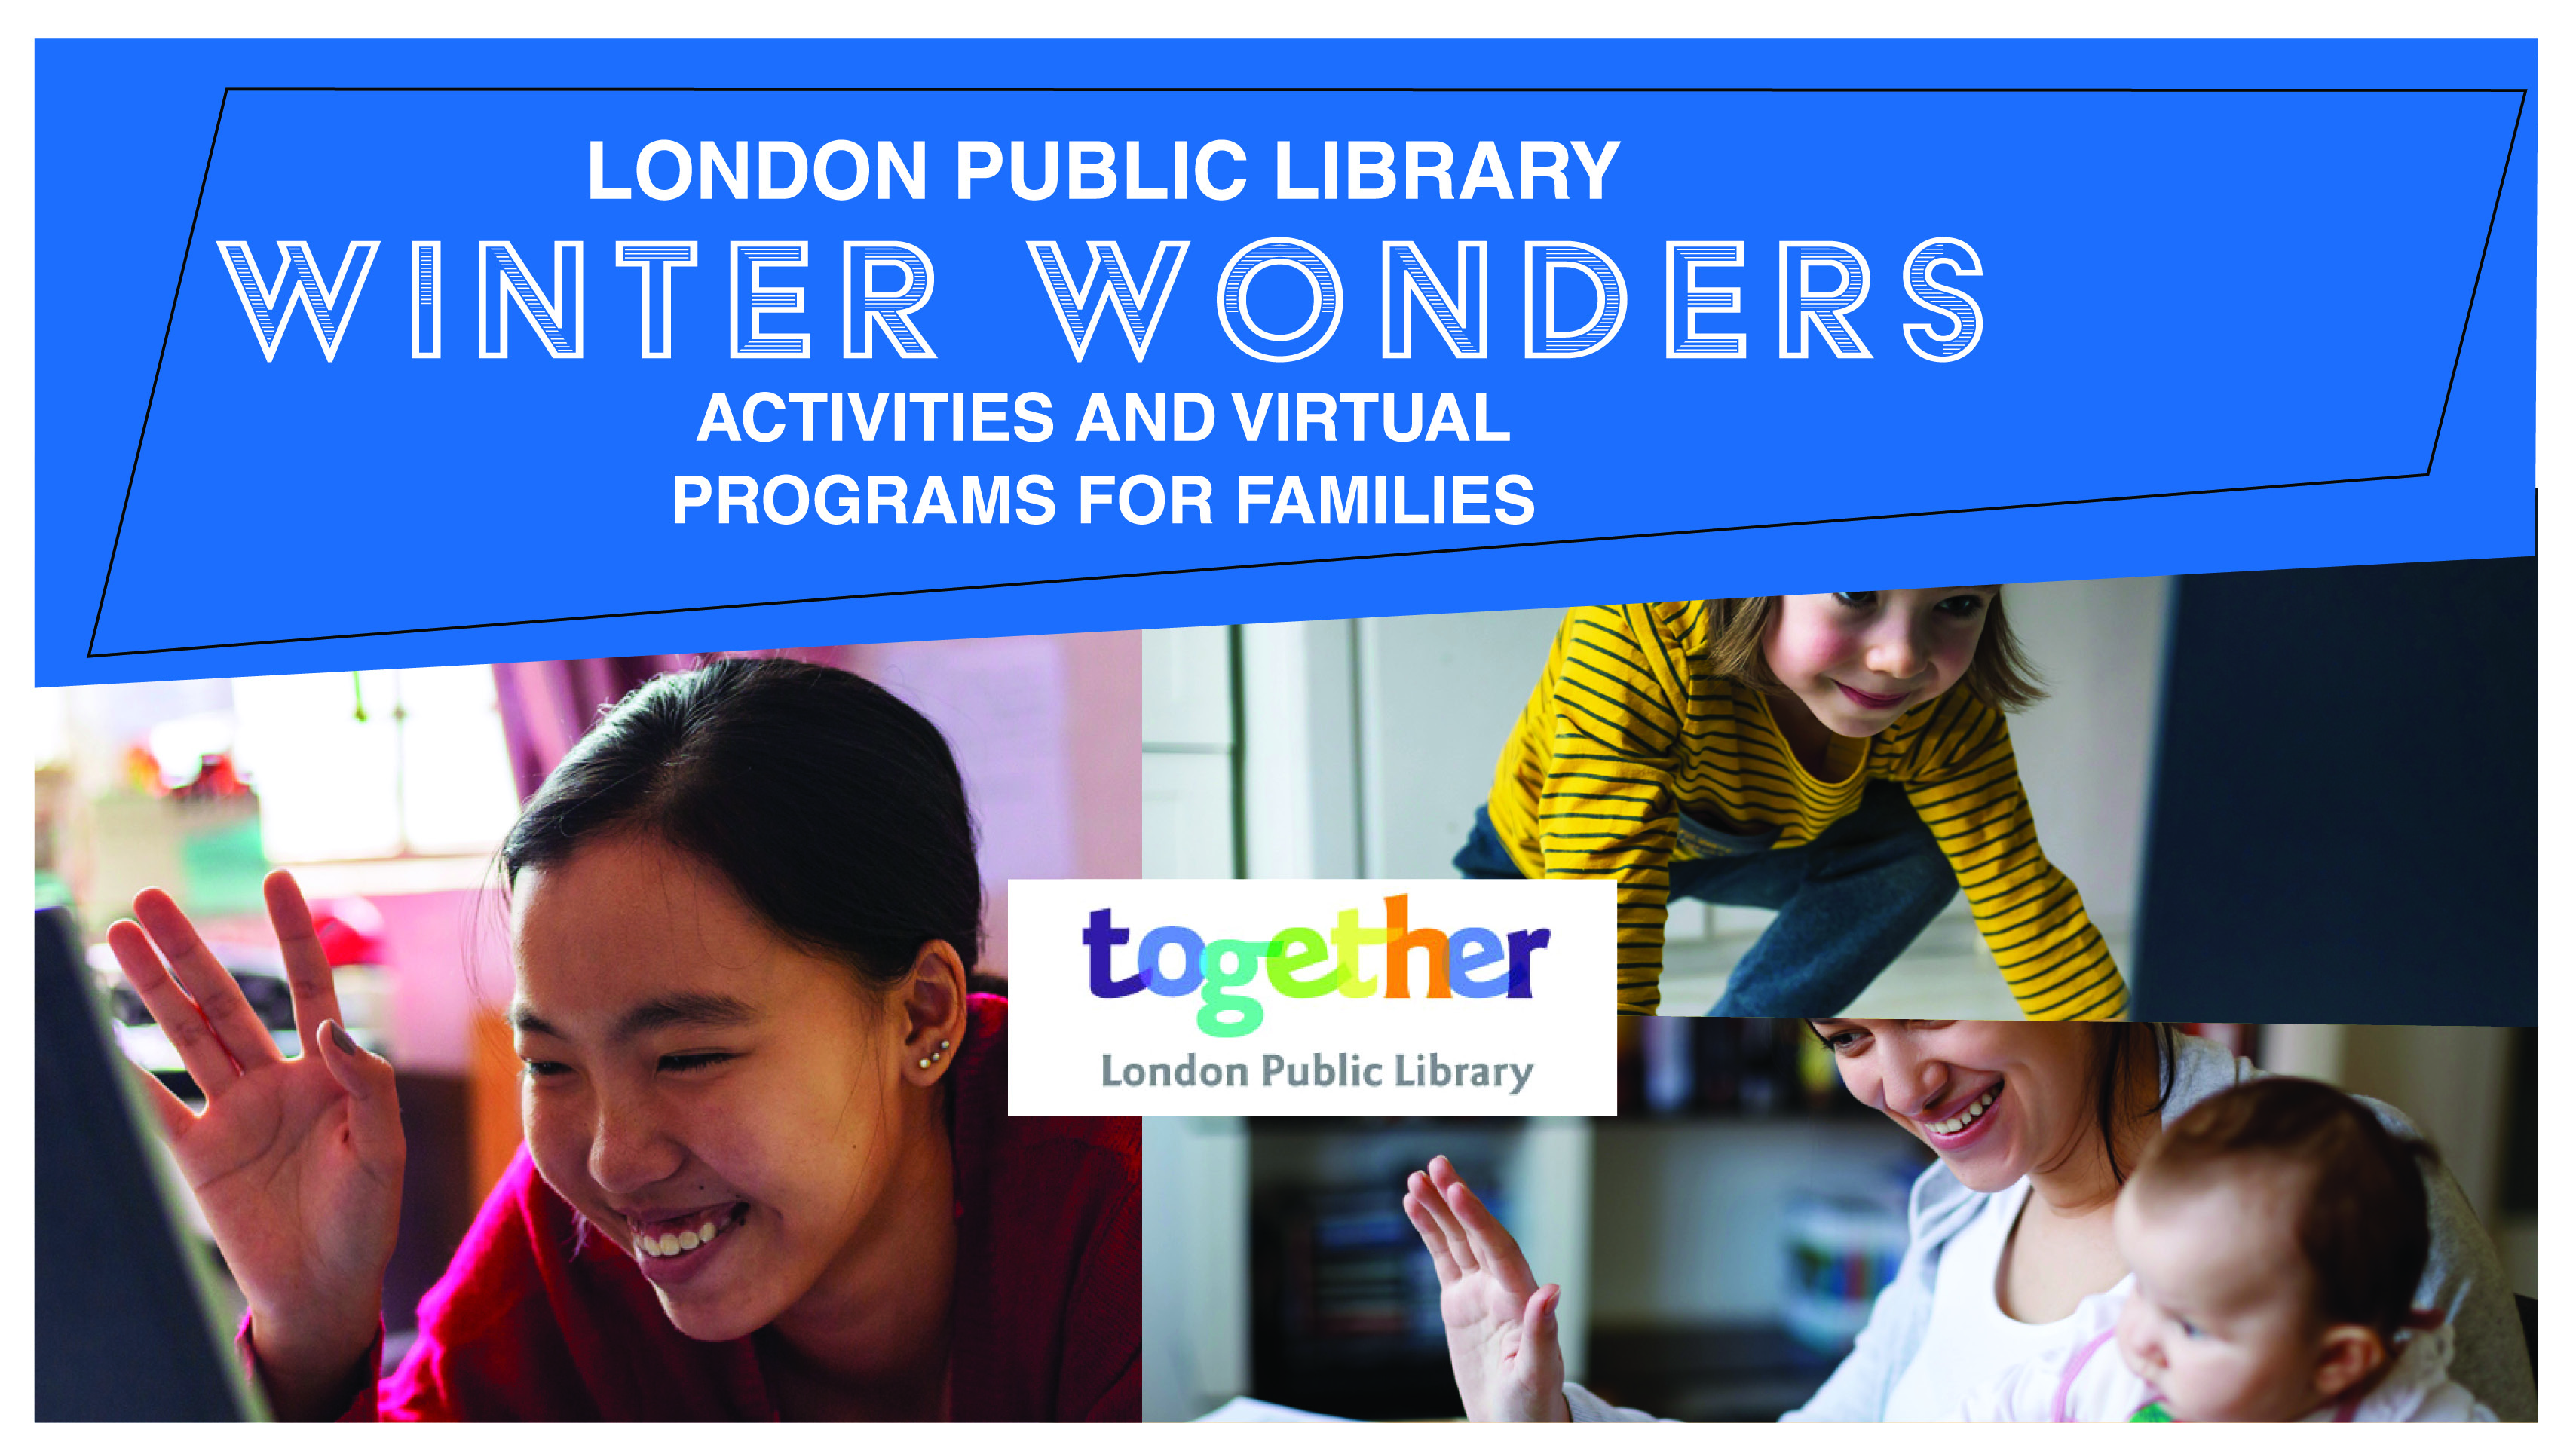 Winter 2020 - London Public Library Winter Wonders activities and virtual programs for family